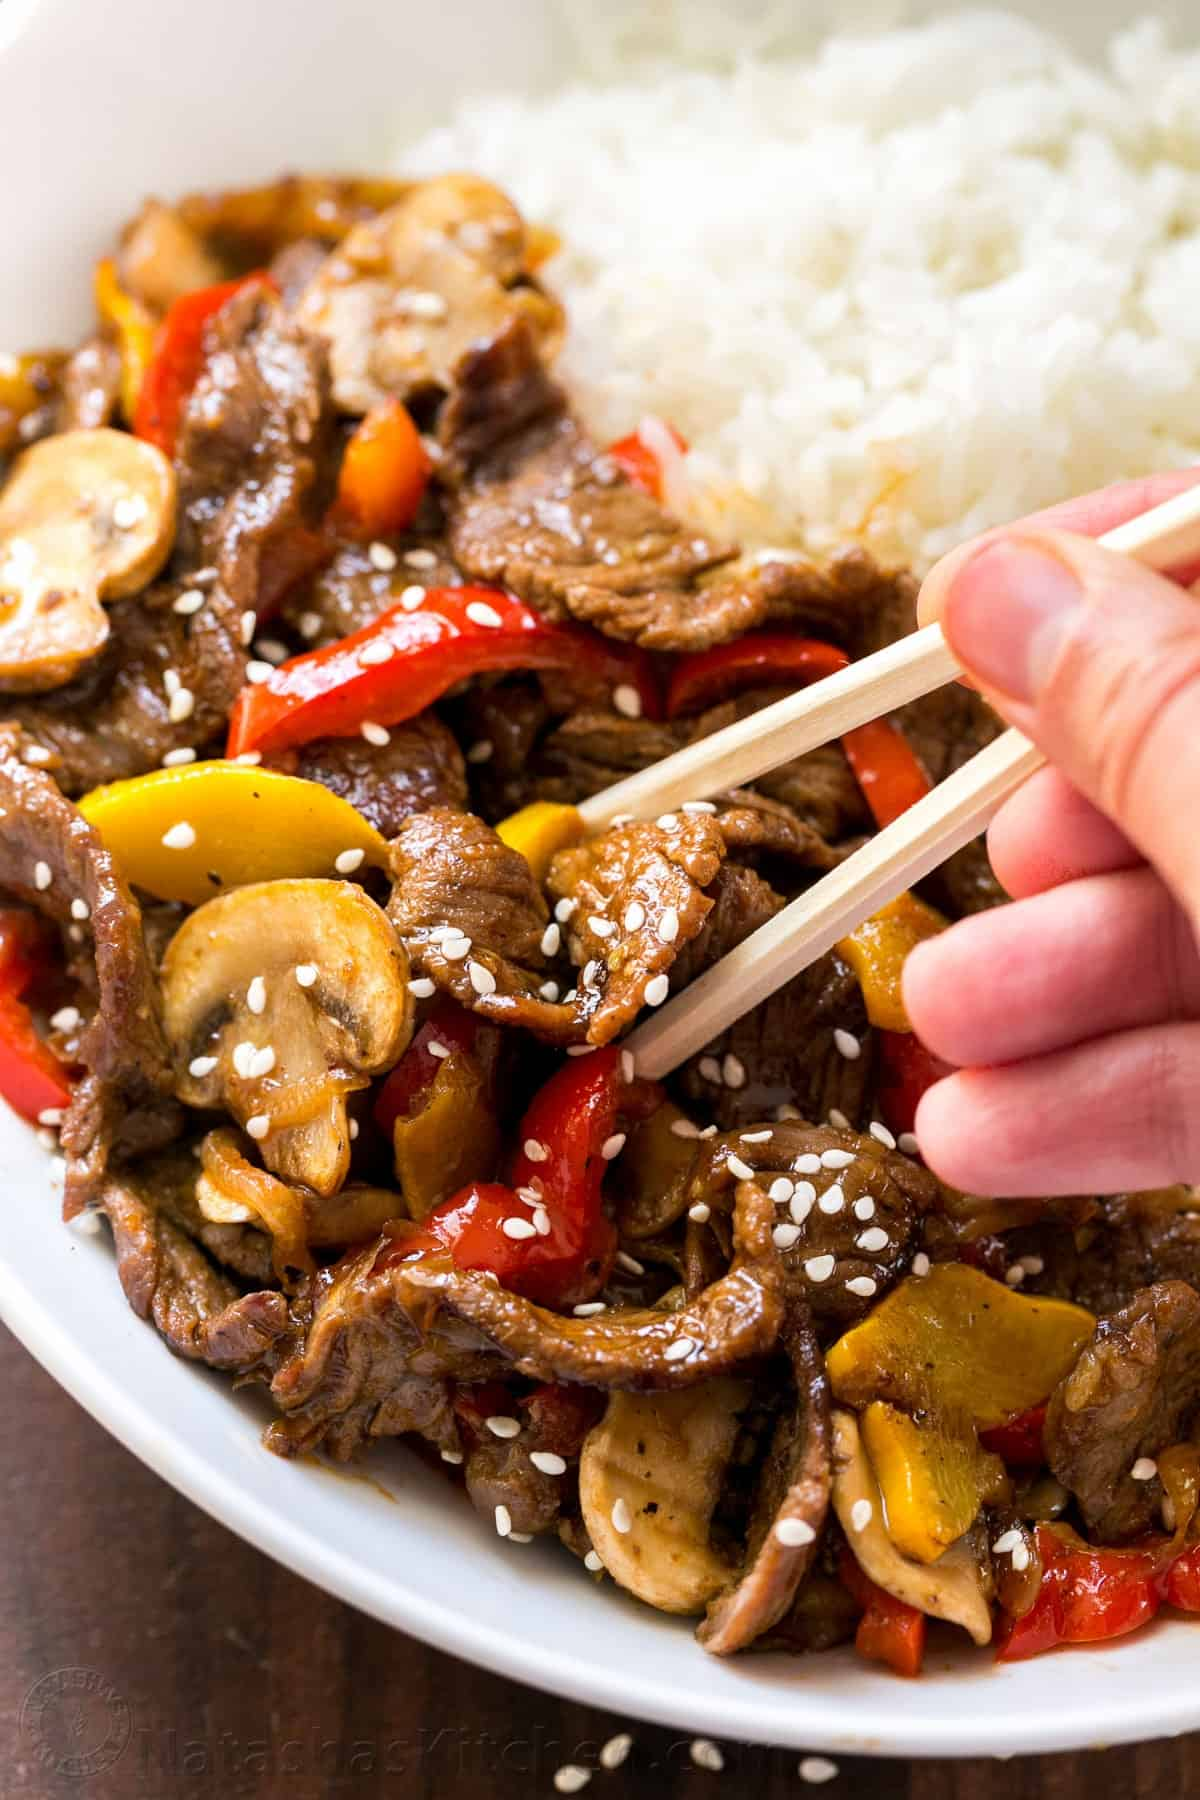 Beef Stir Fry Recipe With 3 Ingredient Sauce